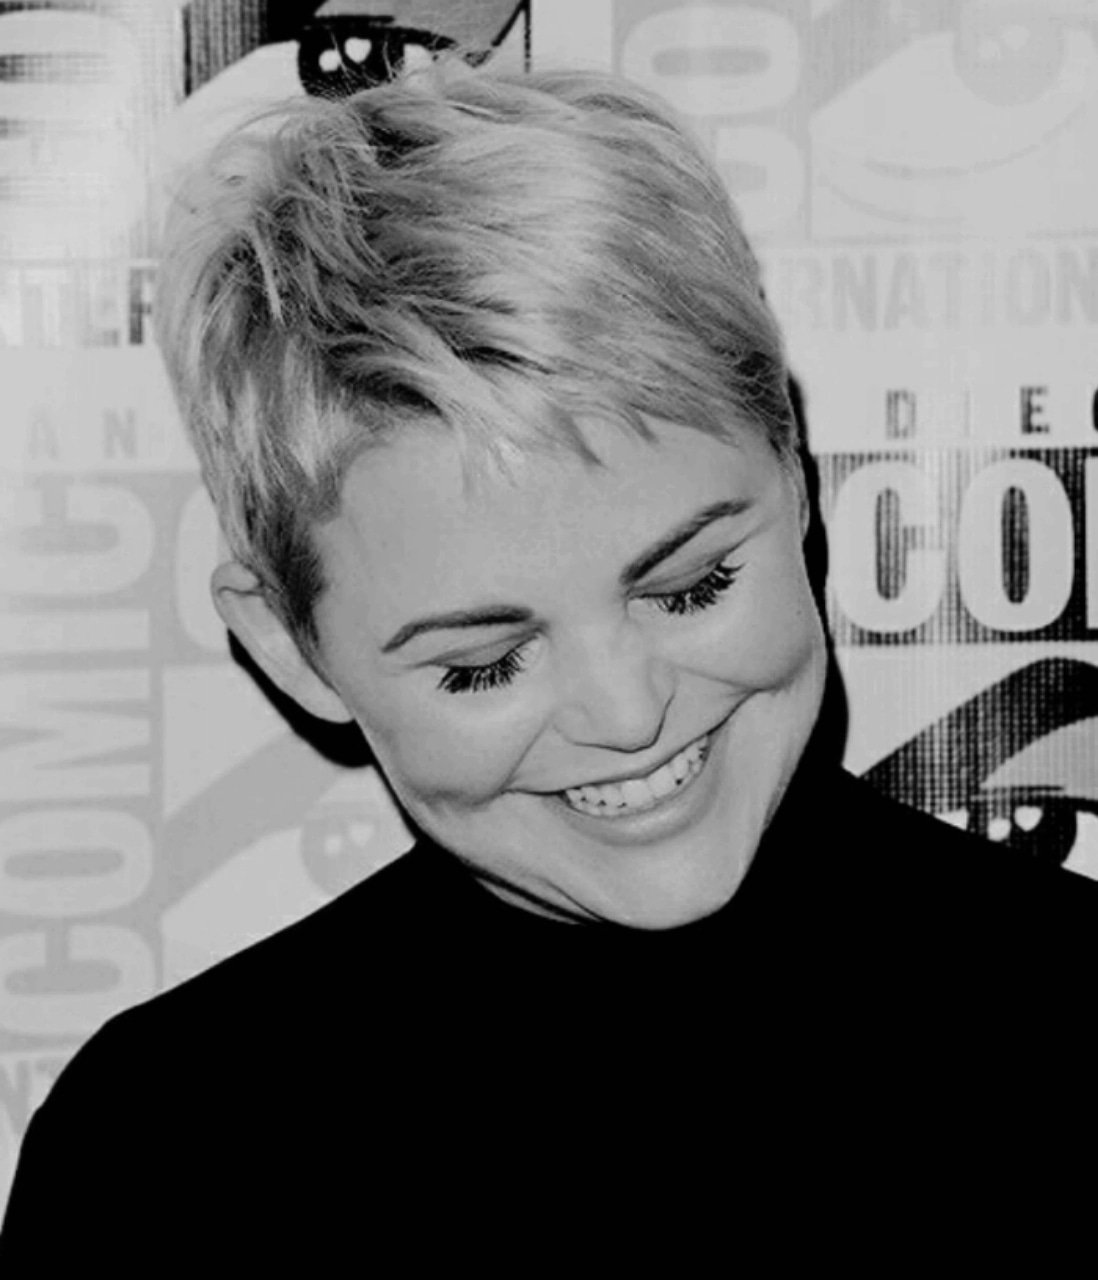 Happy birthday ginnifer  goodwin a real life princess  you deserve the best always love you with all my heart